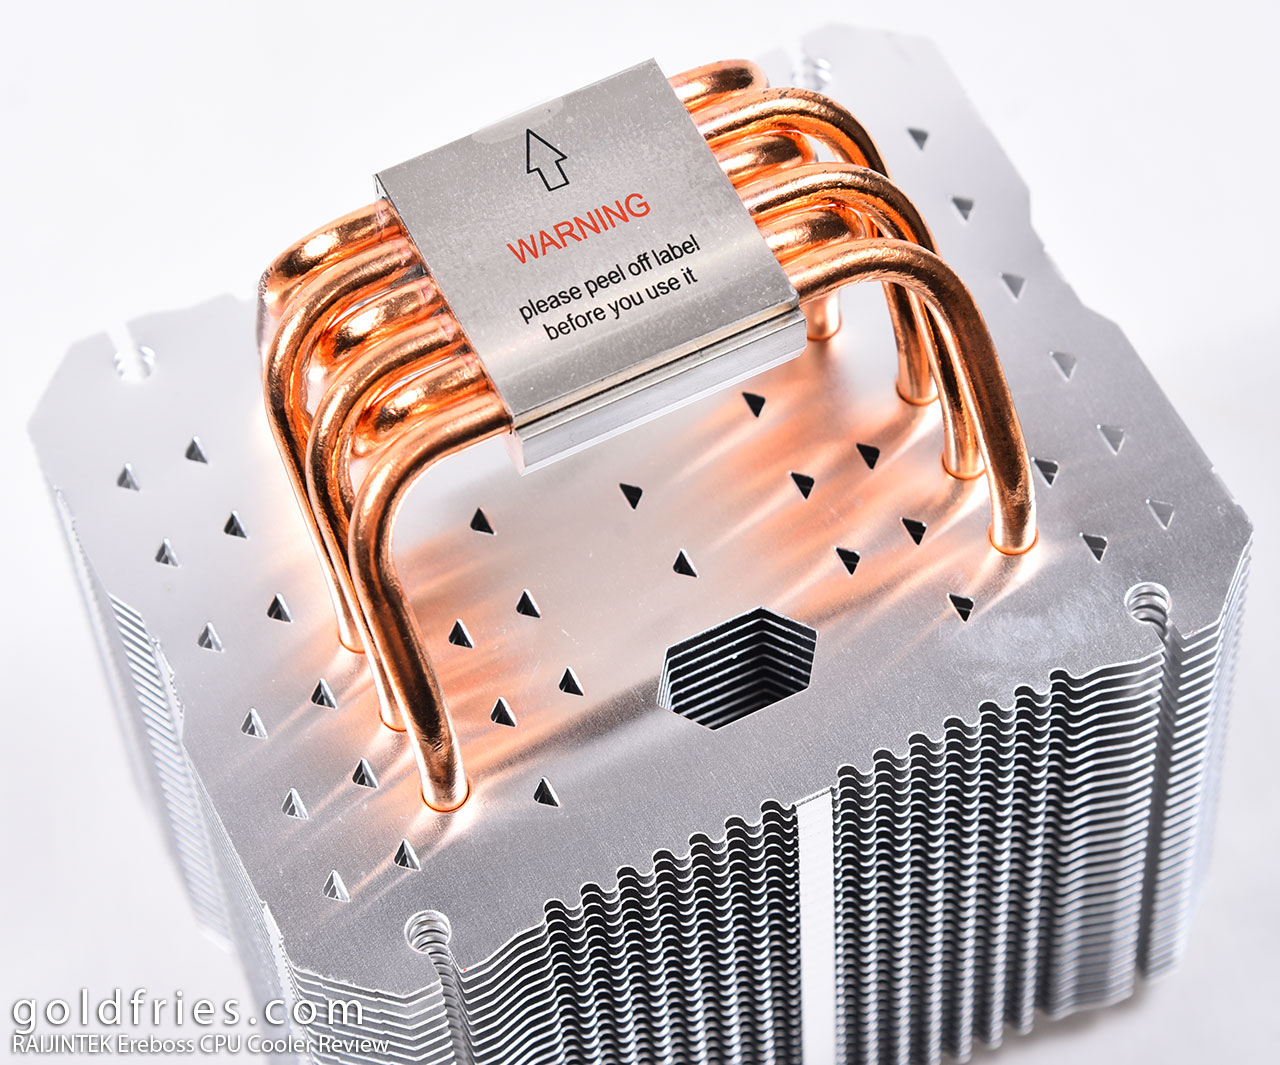 RAIJINTEK Ereboss CPU Cooler Review